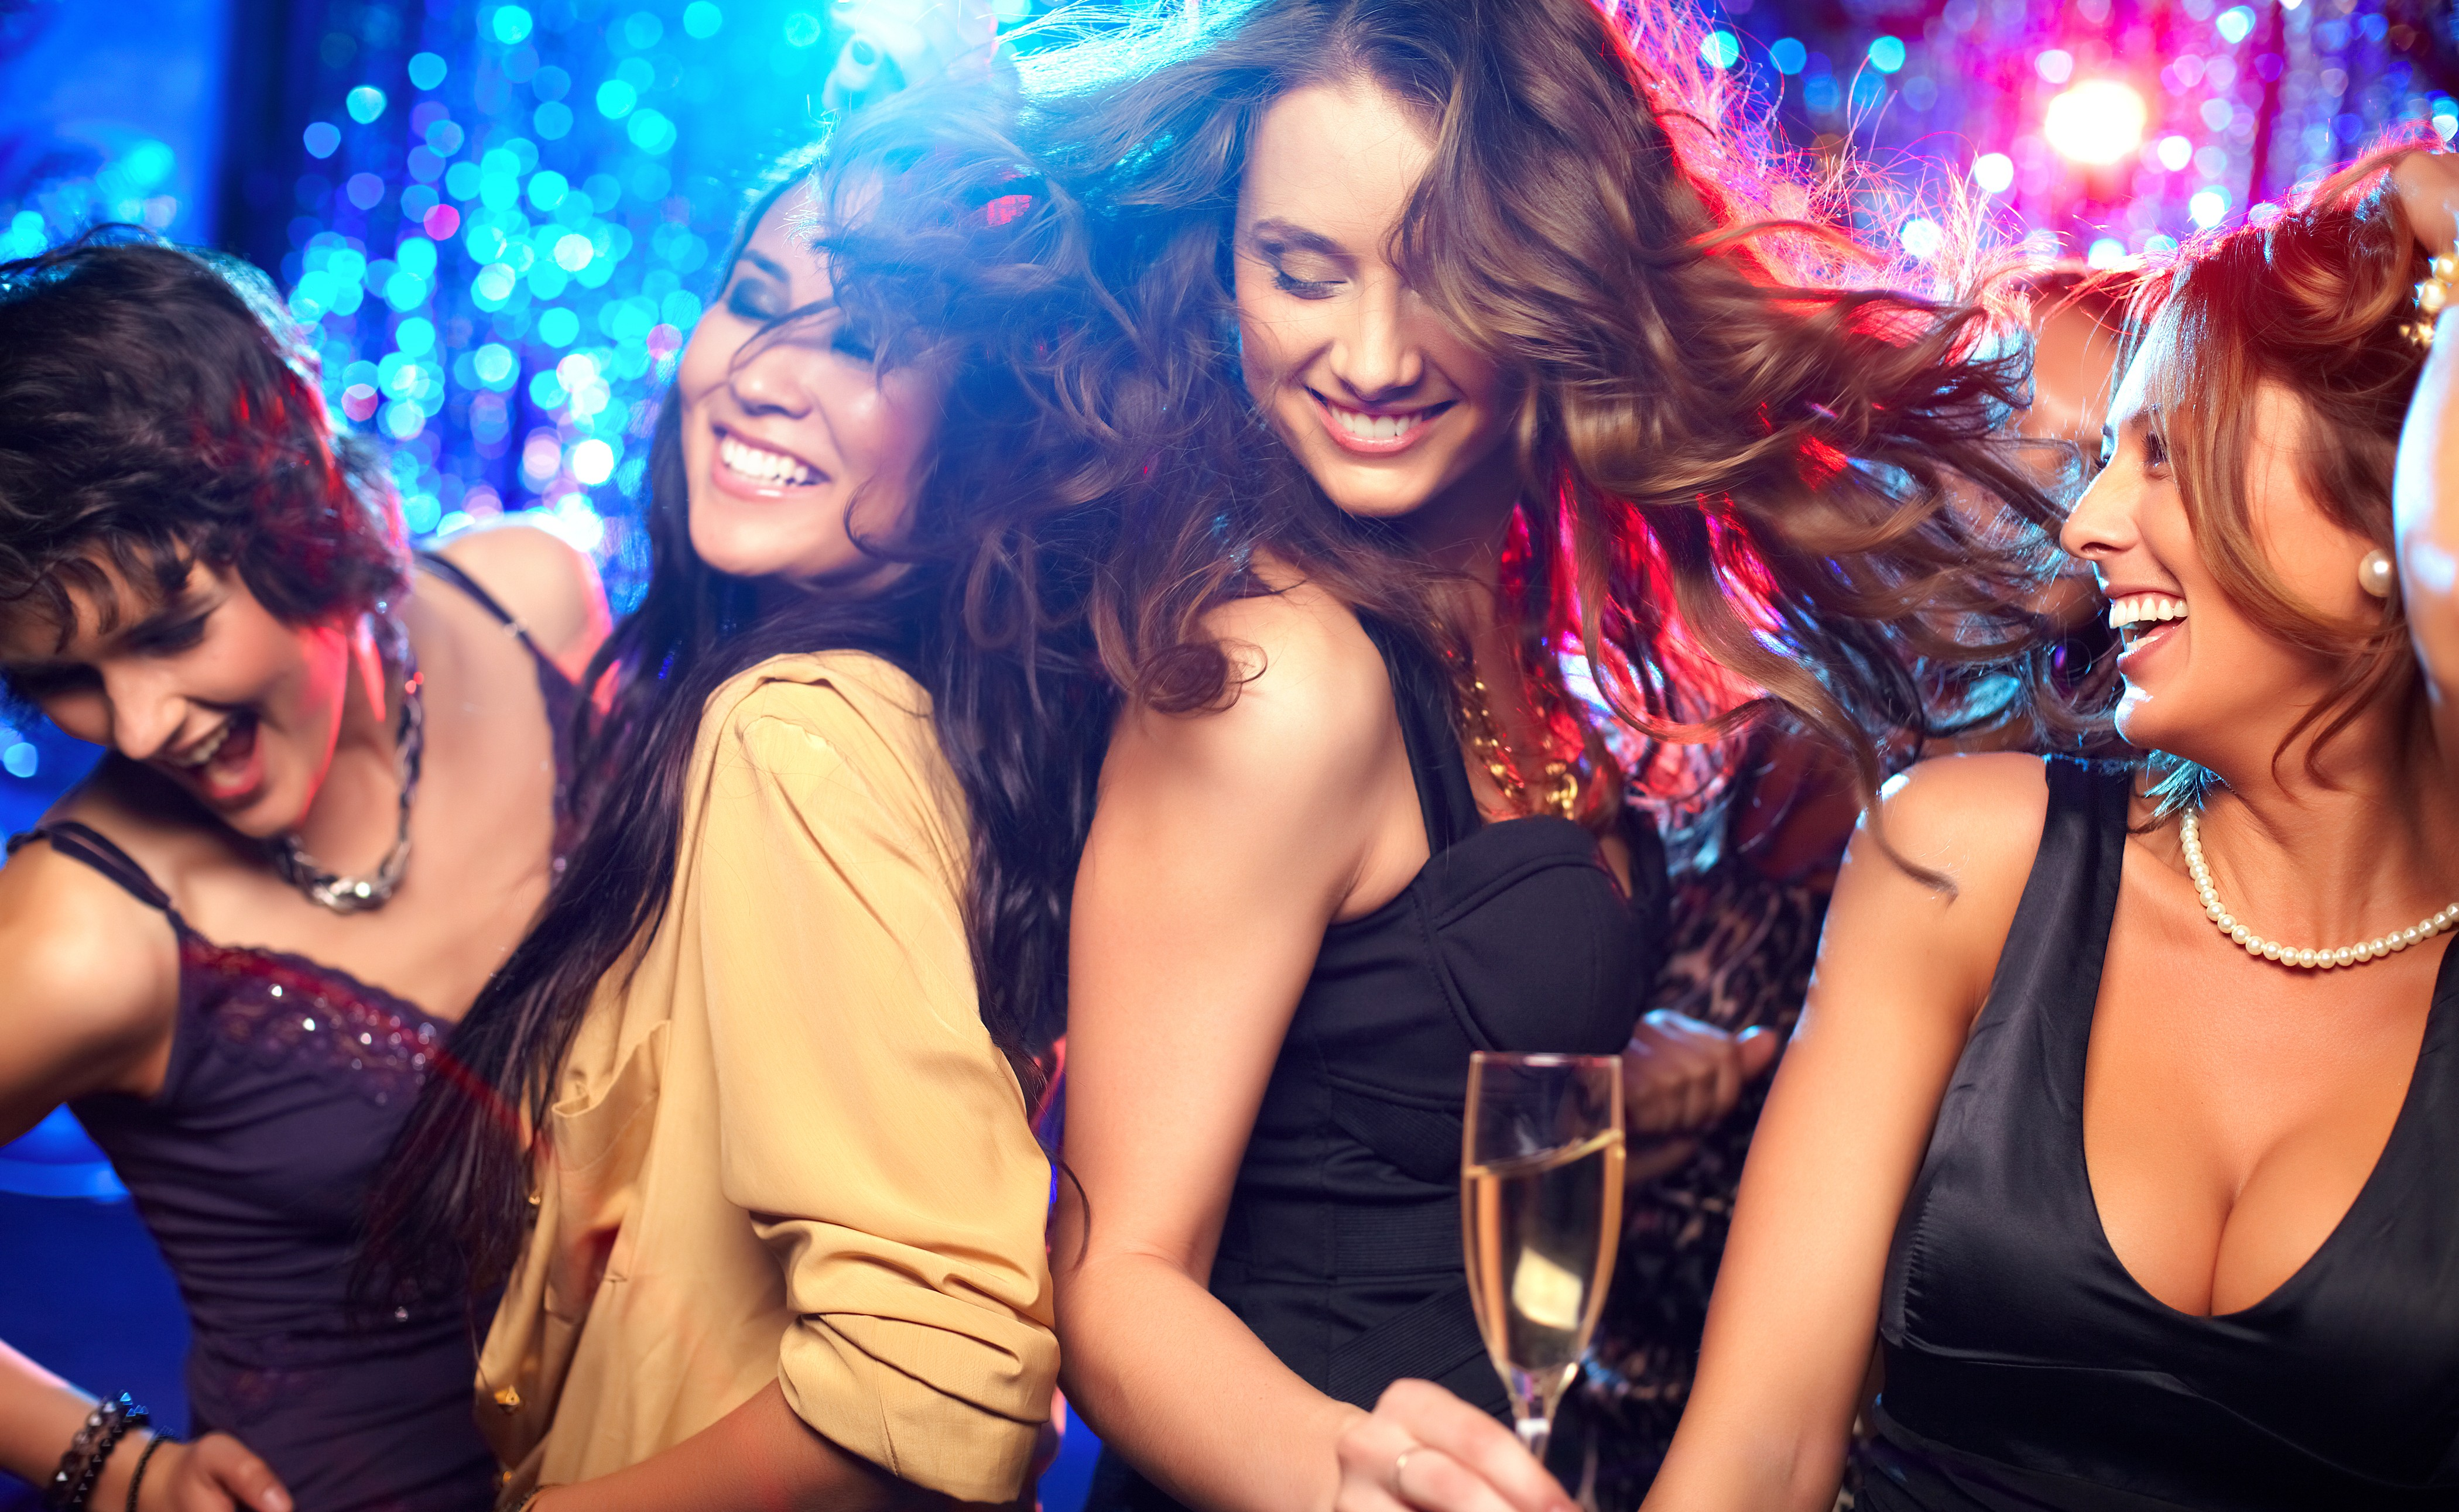 Nightlife in Barcelona: Partying in the Best Barcelona Clubs